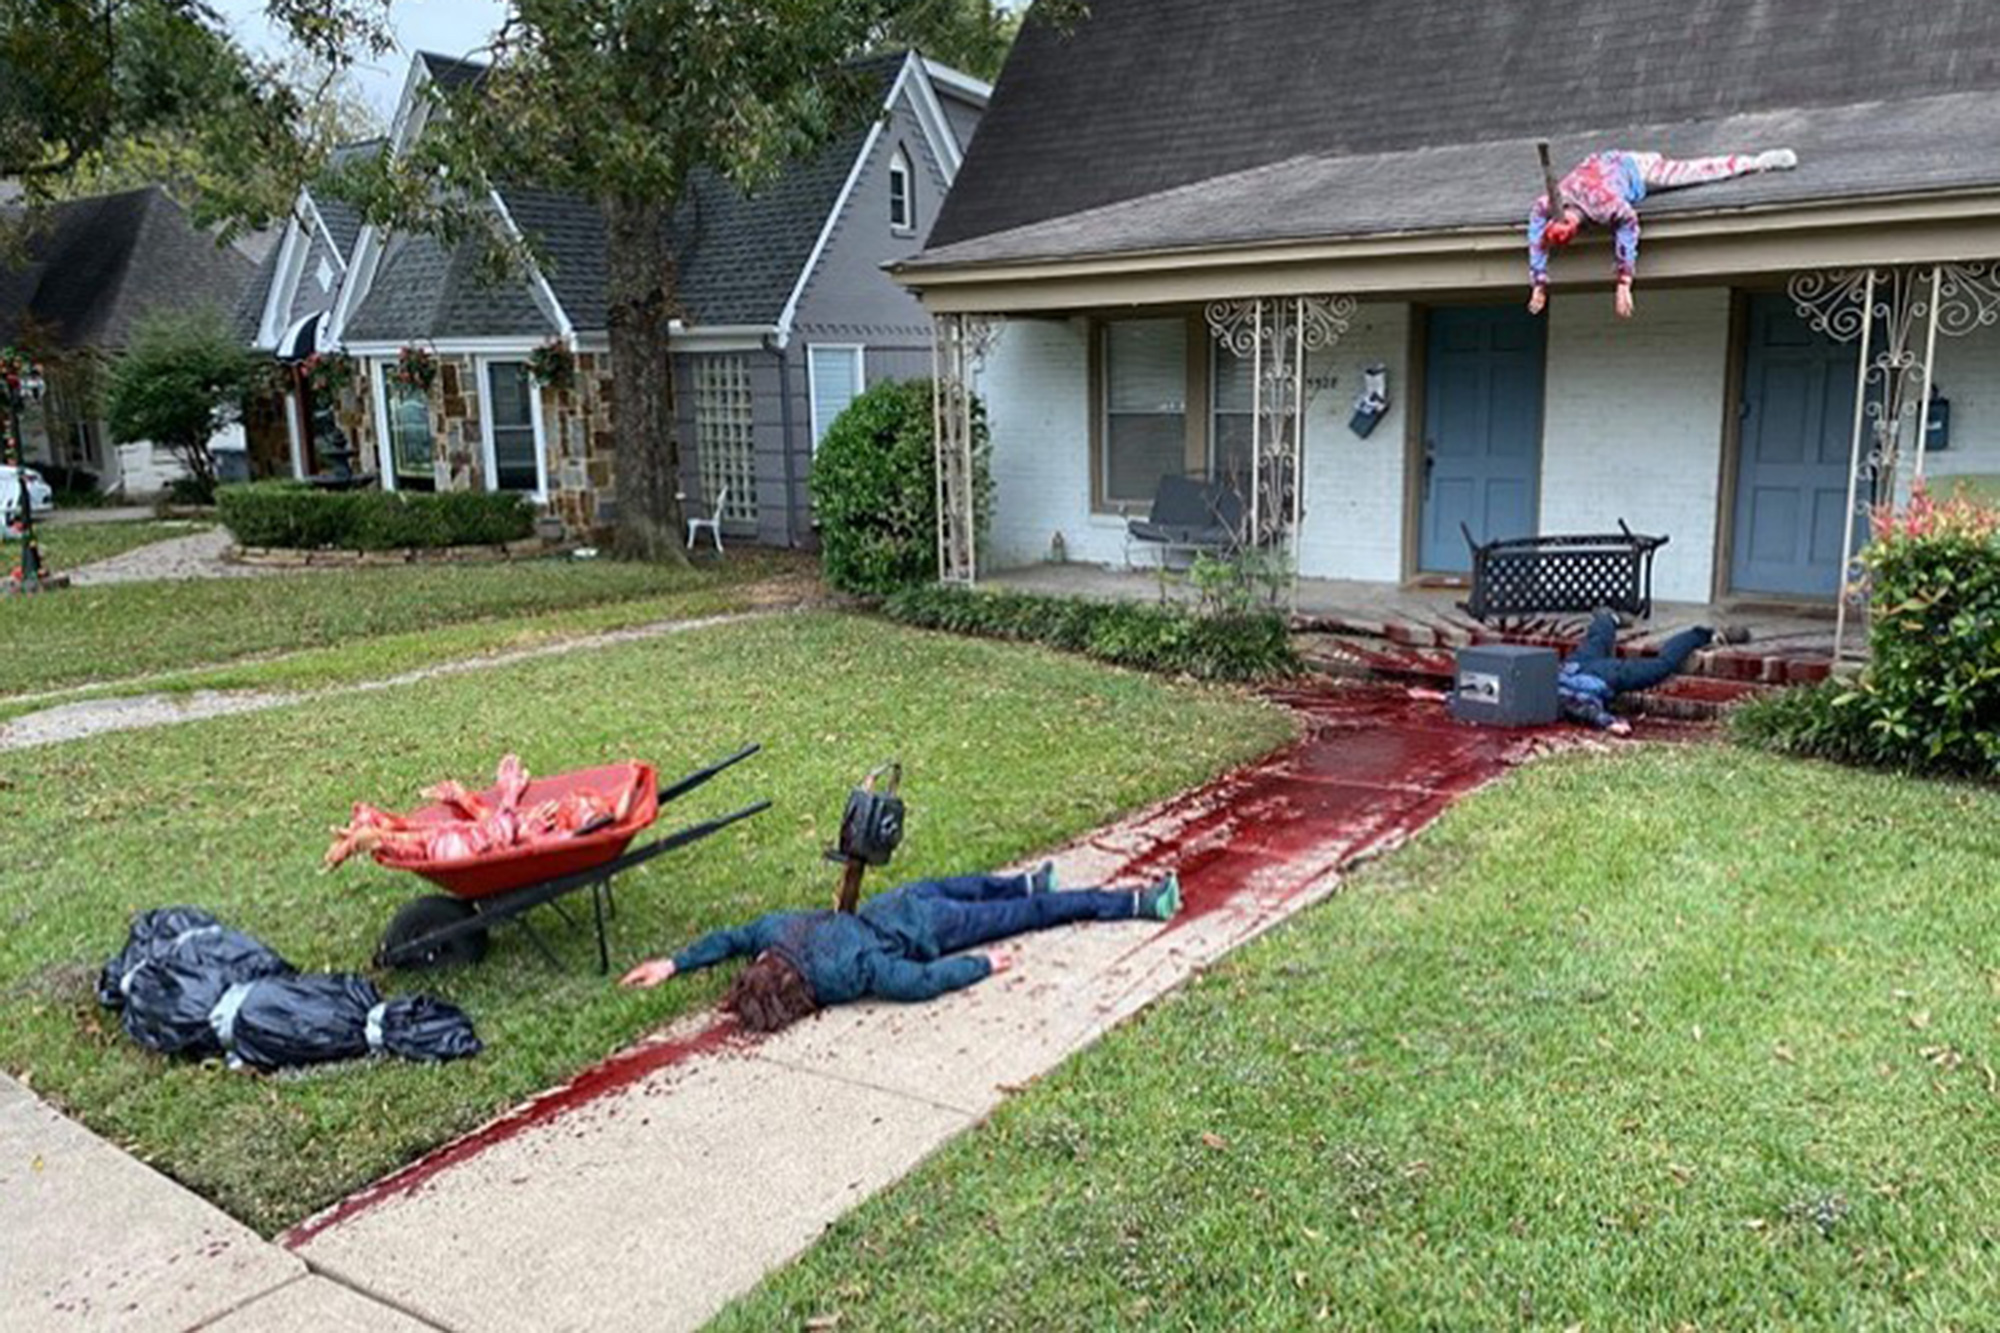 Bloody Halloween display keeps bringing cops to artist's home